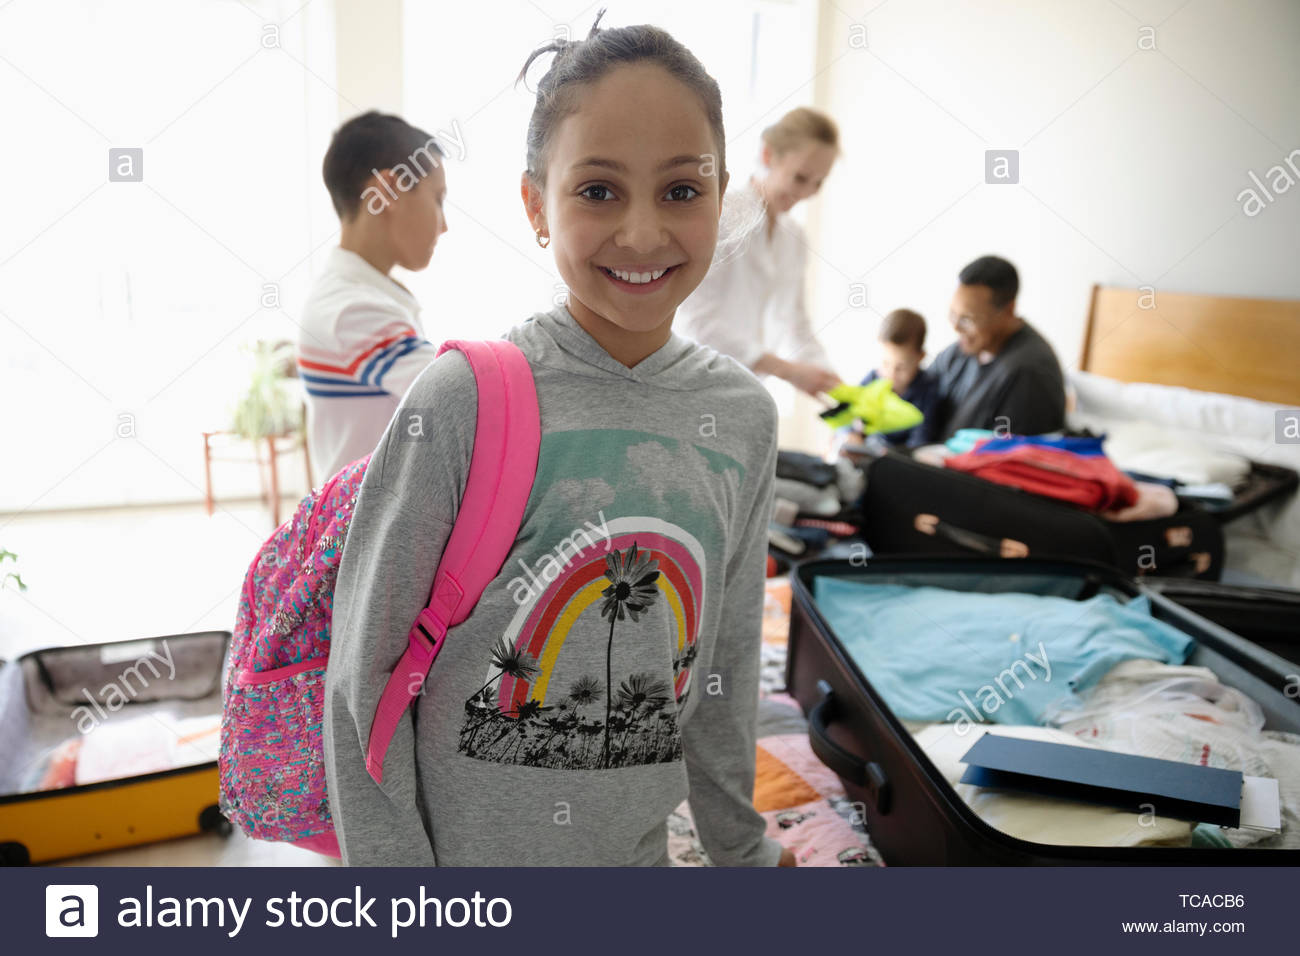 Portrait smiling, confident girl helping family pack suitcases - Stock Image